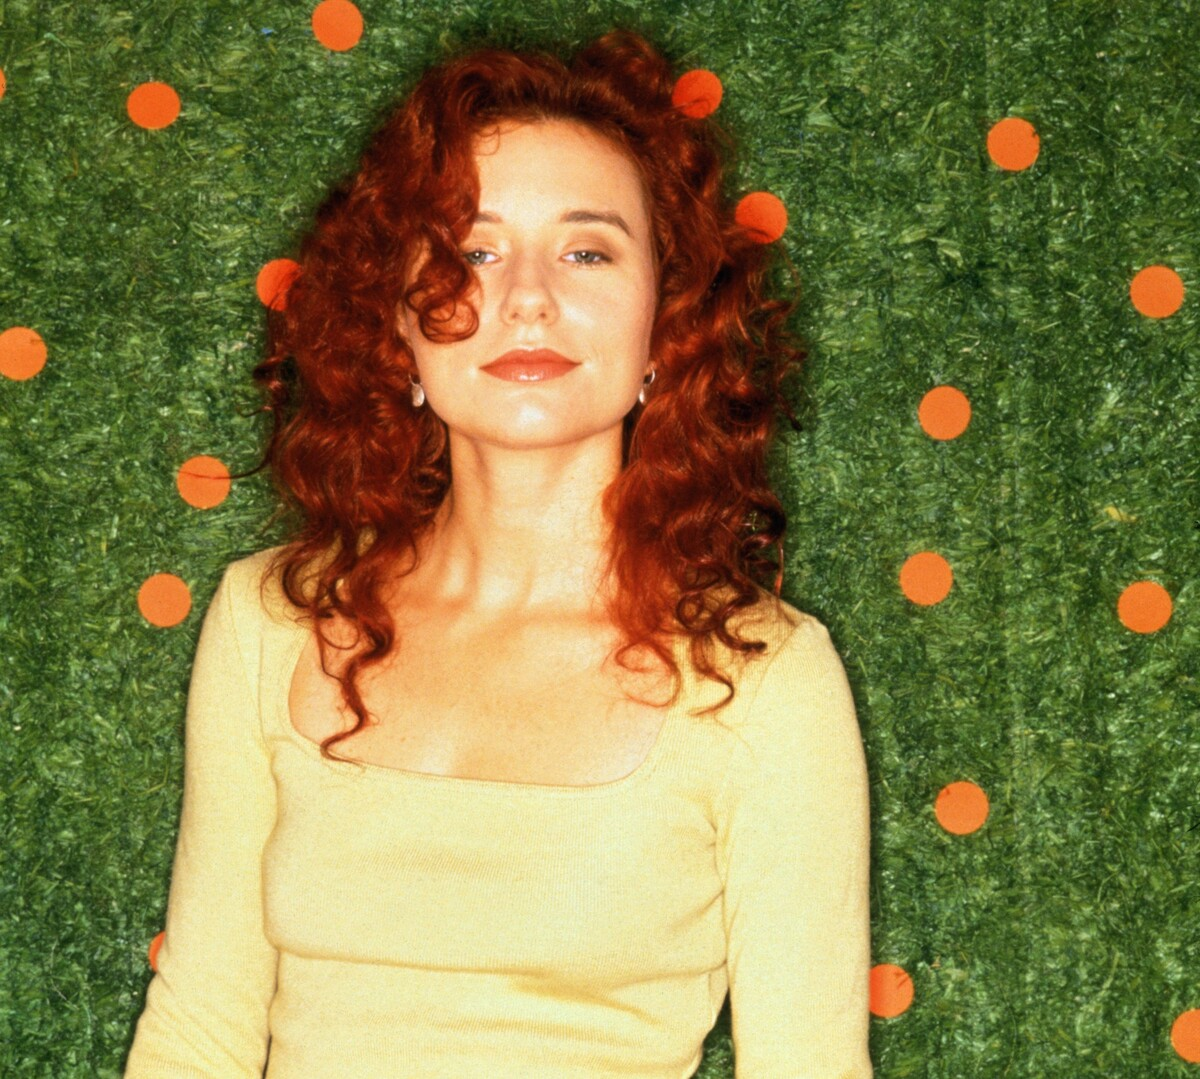 an analysis of me and a gun a ballad by tori amos 'me and a gun' was tori amos' first solo single  in an analysis of 'me and a gun' , deborah finding looks at tori amos' position both within it.